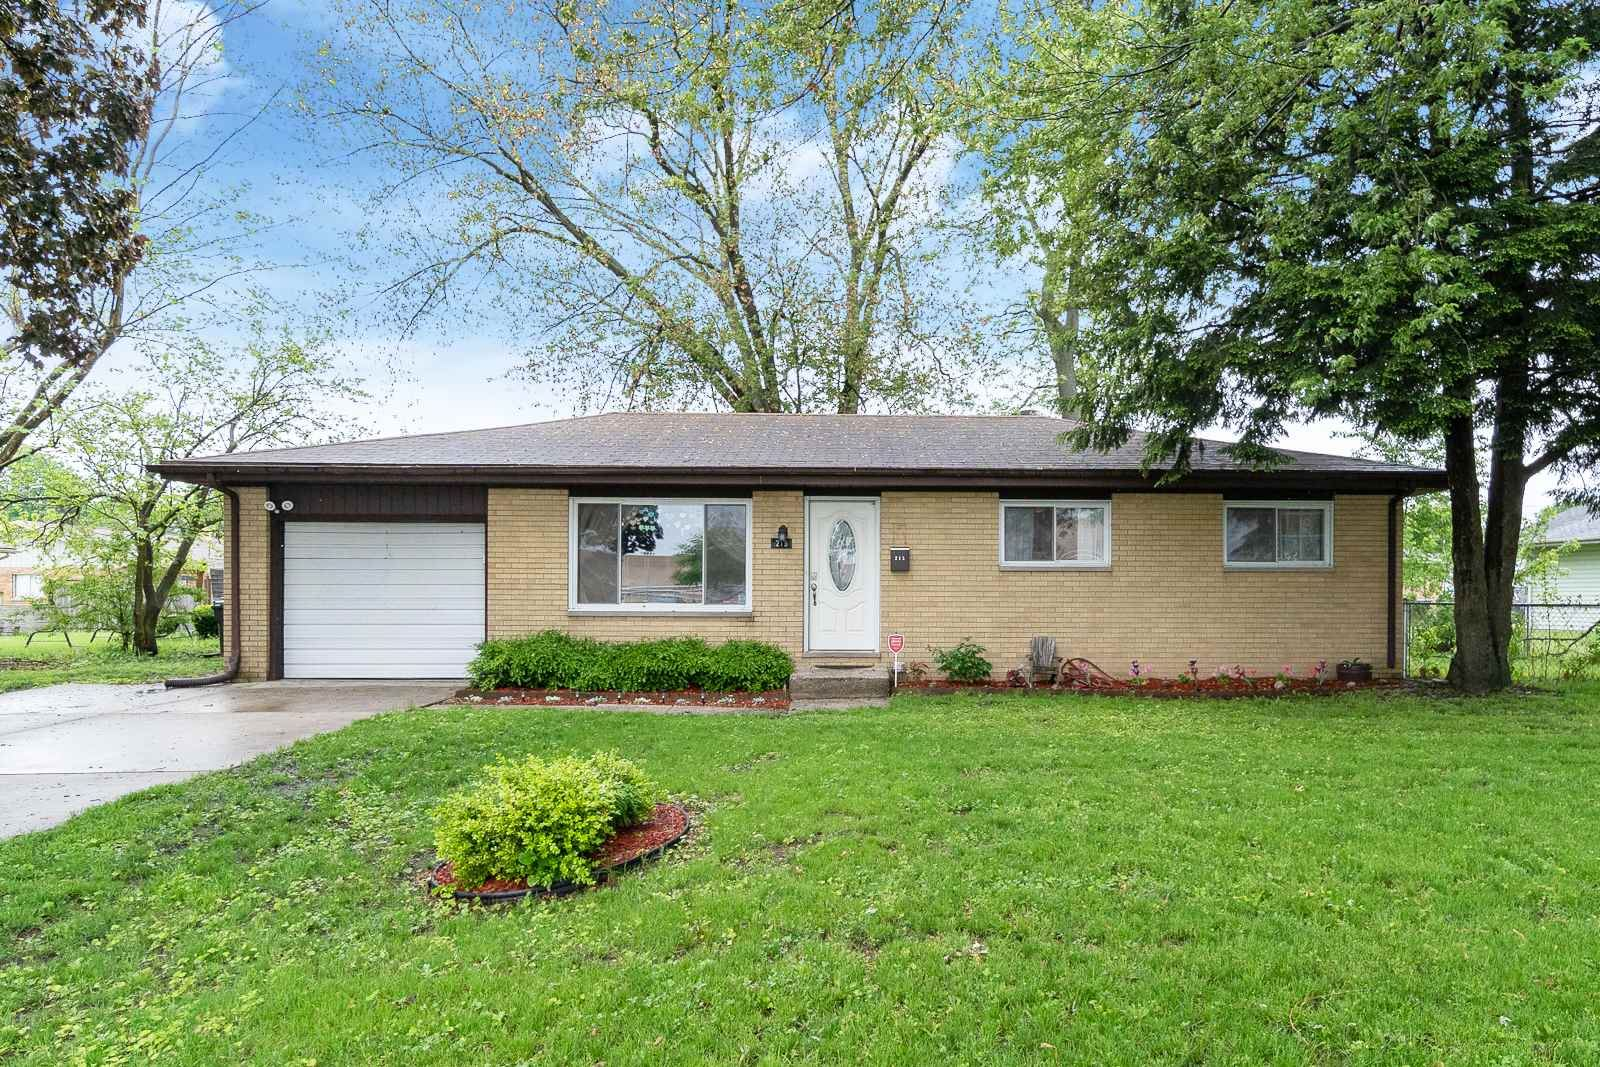 215 S Summit Drive, South Bend, IN 46619 - #: 202019771